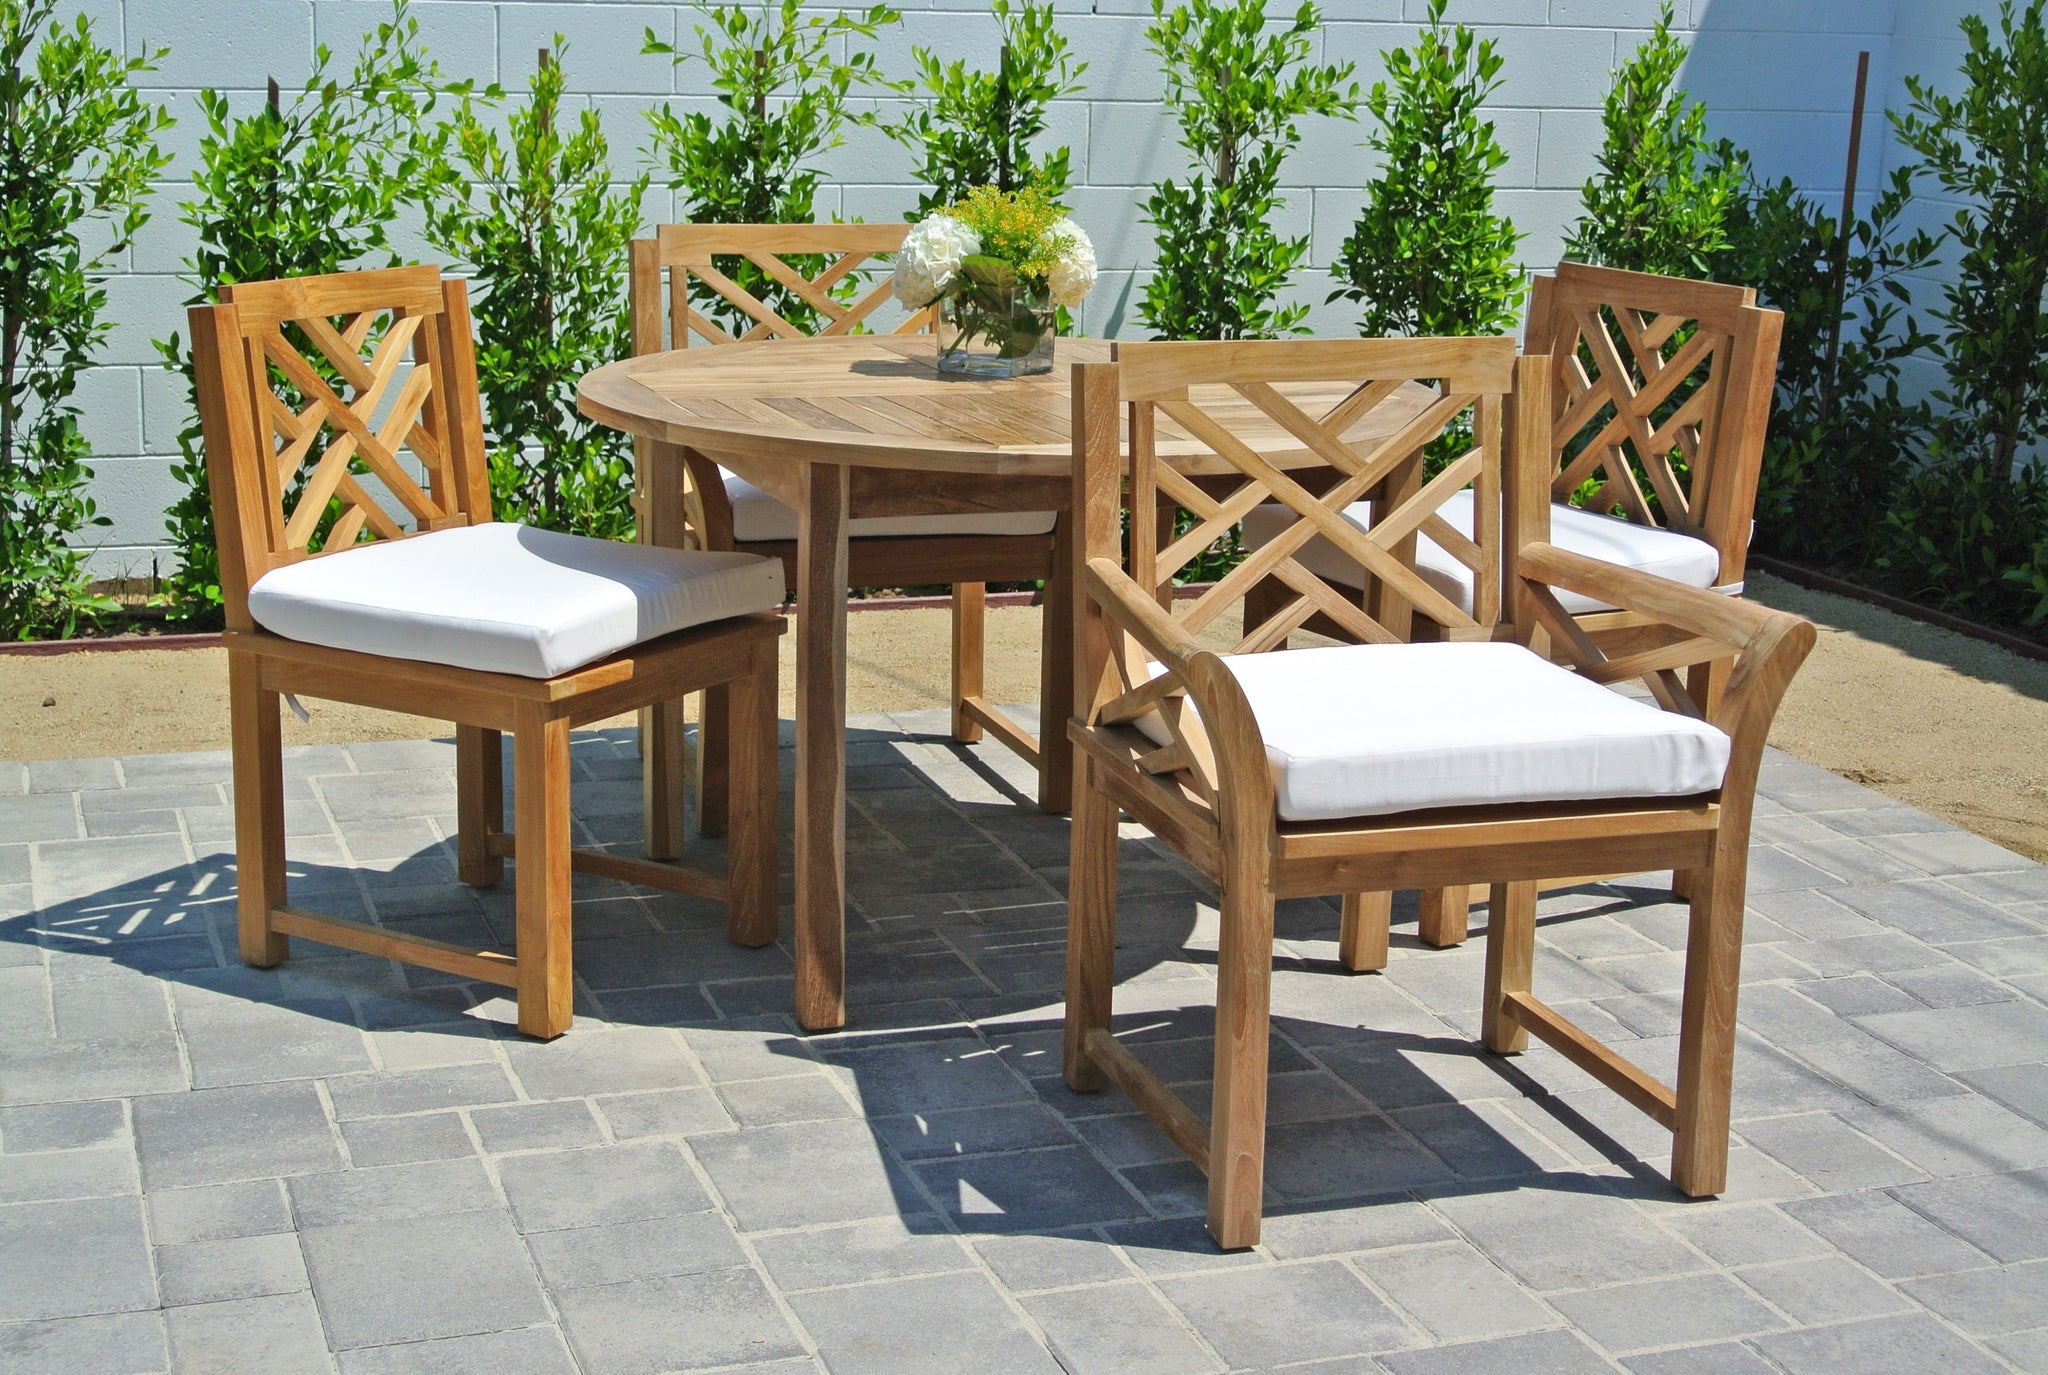 ... Teak Outdoor Patio Furniture Dining Set With Sunbrella Cushion ...